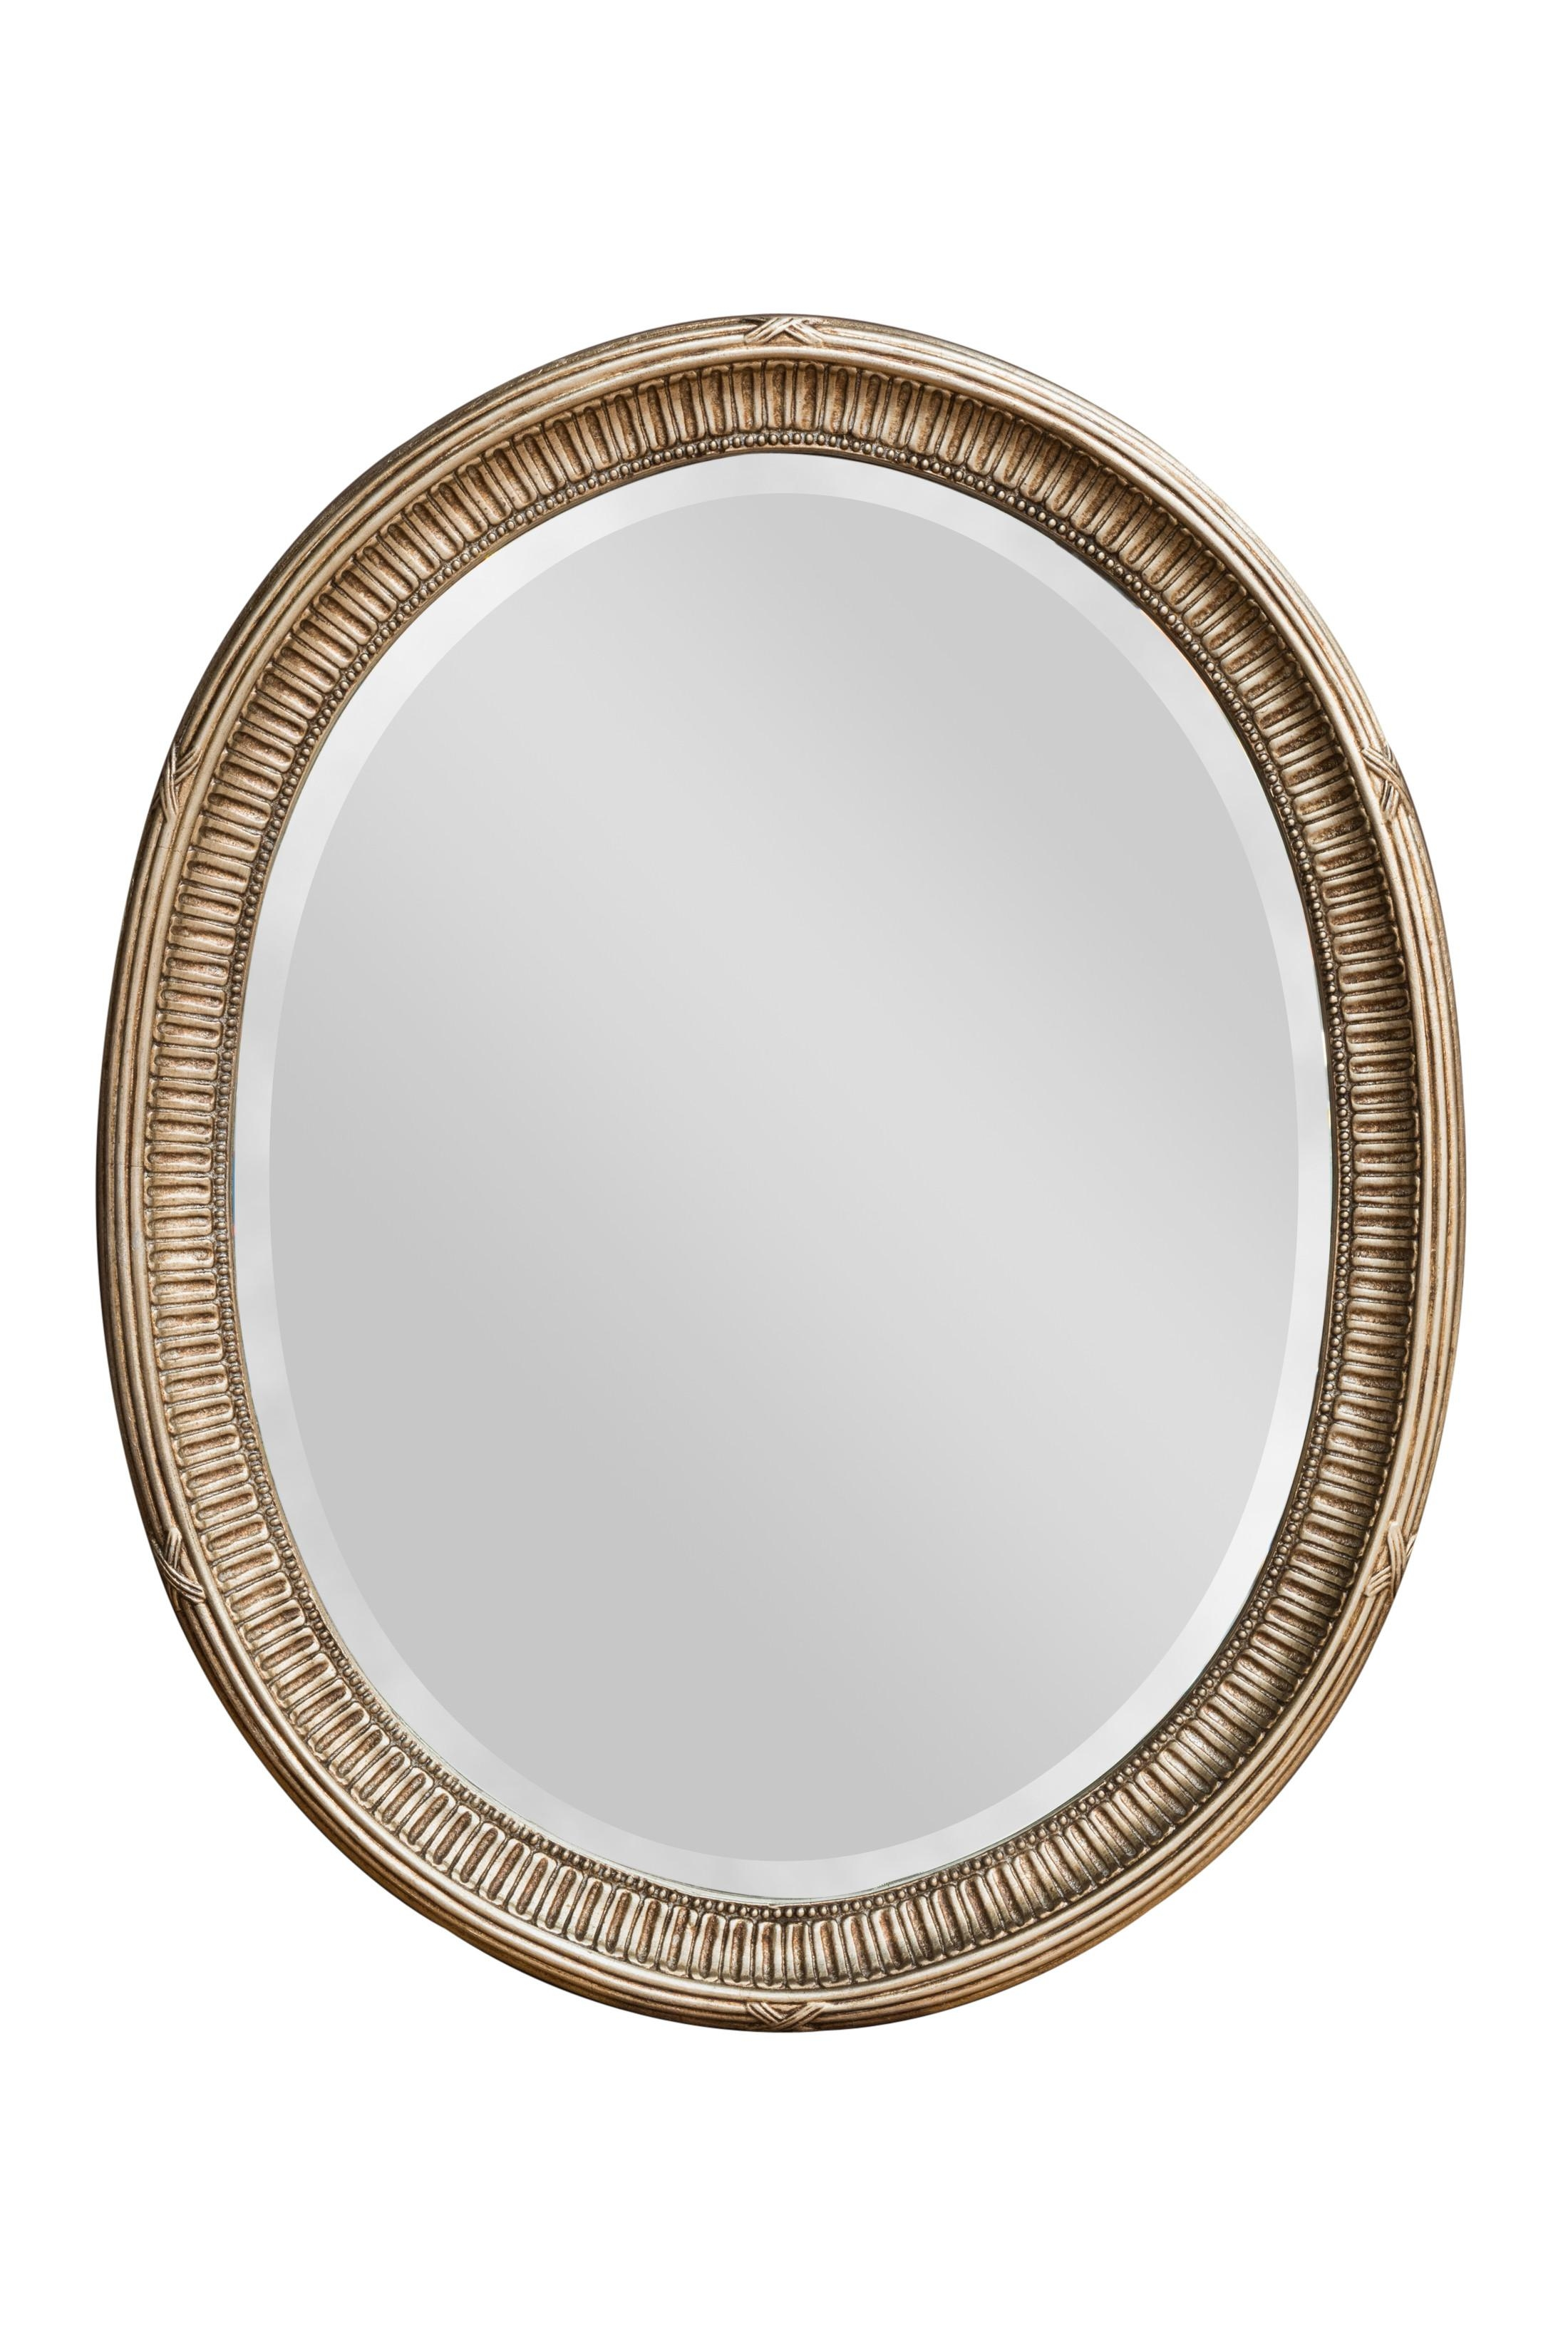 Adam Silver Oval Mirror | Bedroom Mirrors For Sale – Panfili With Oval Silver Mirror (View 5 of 20)